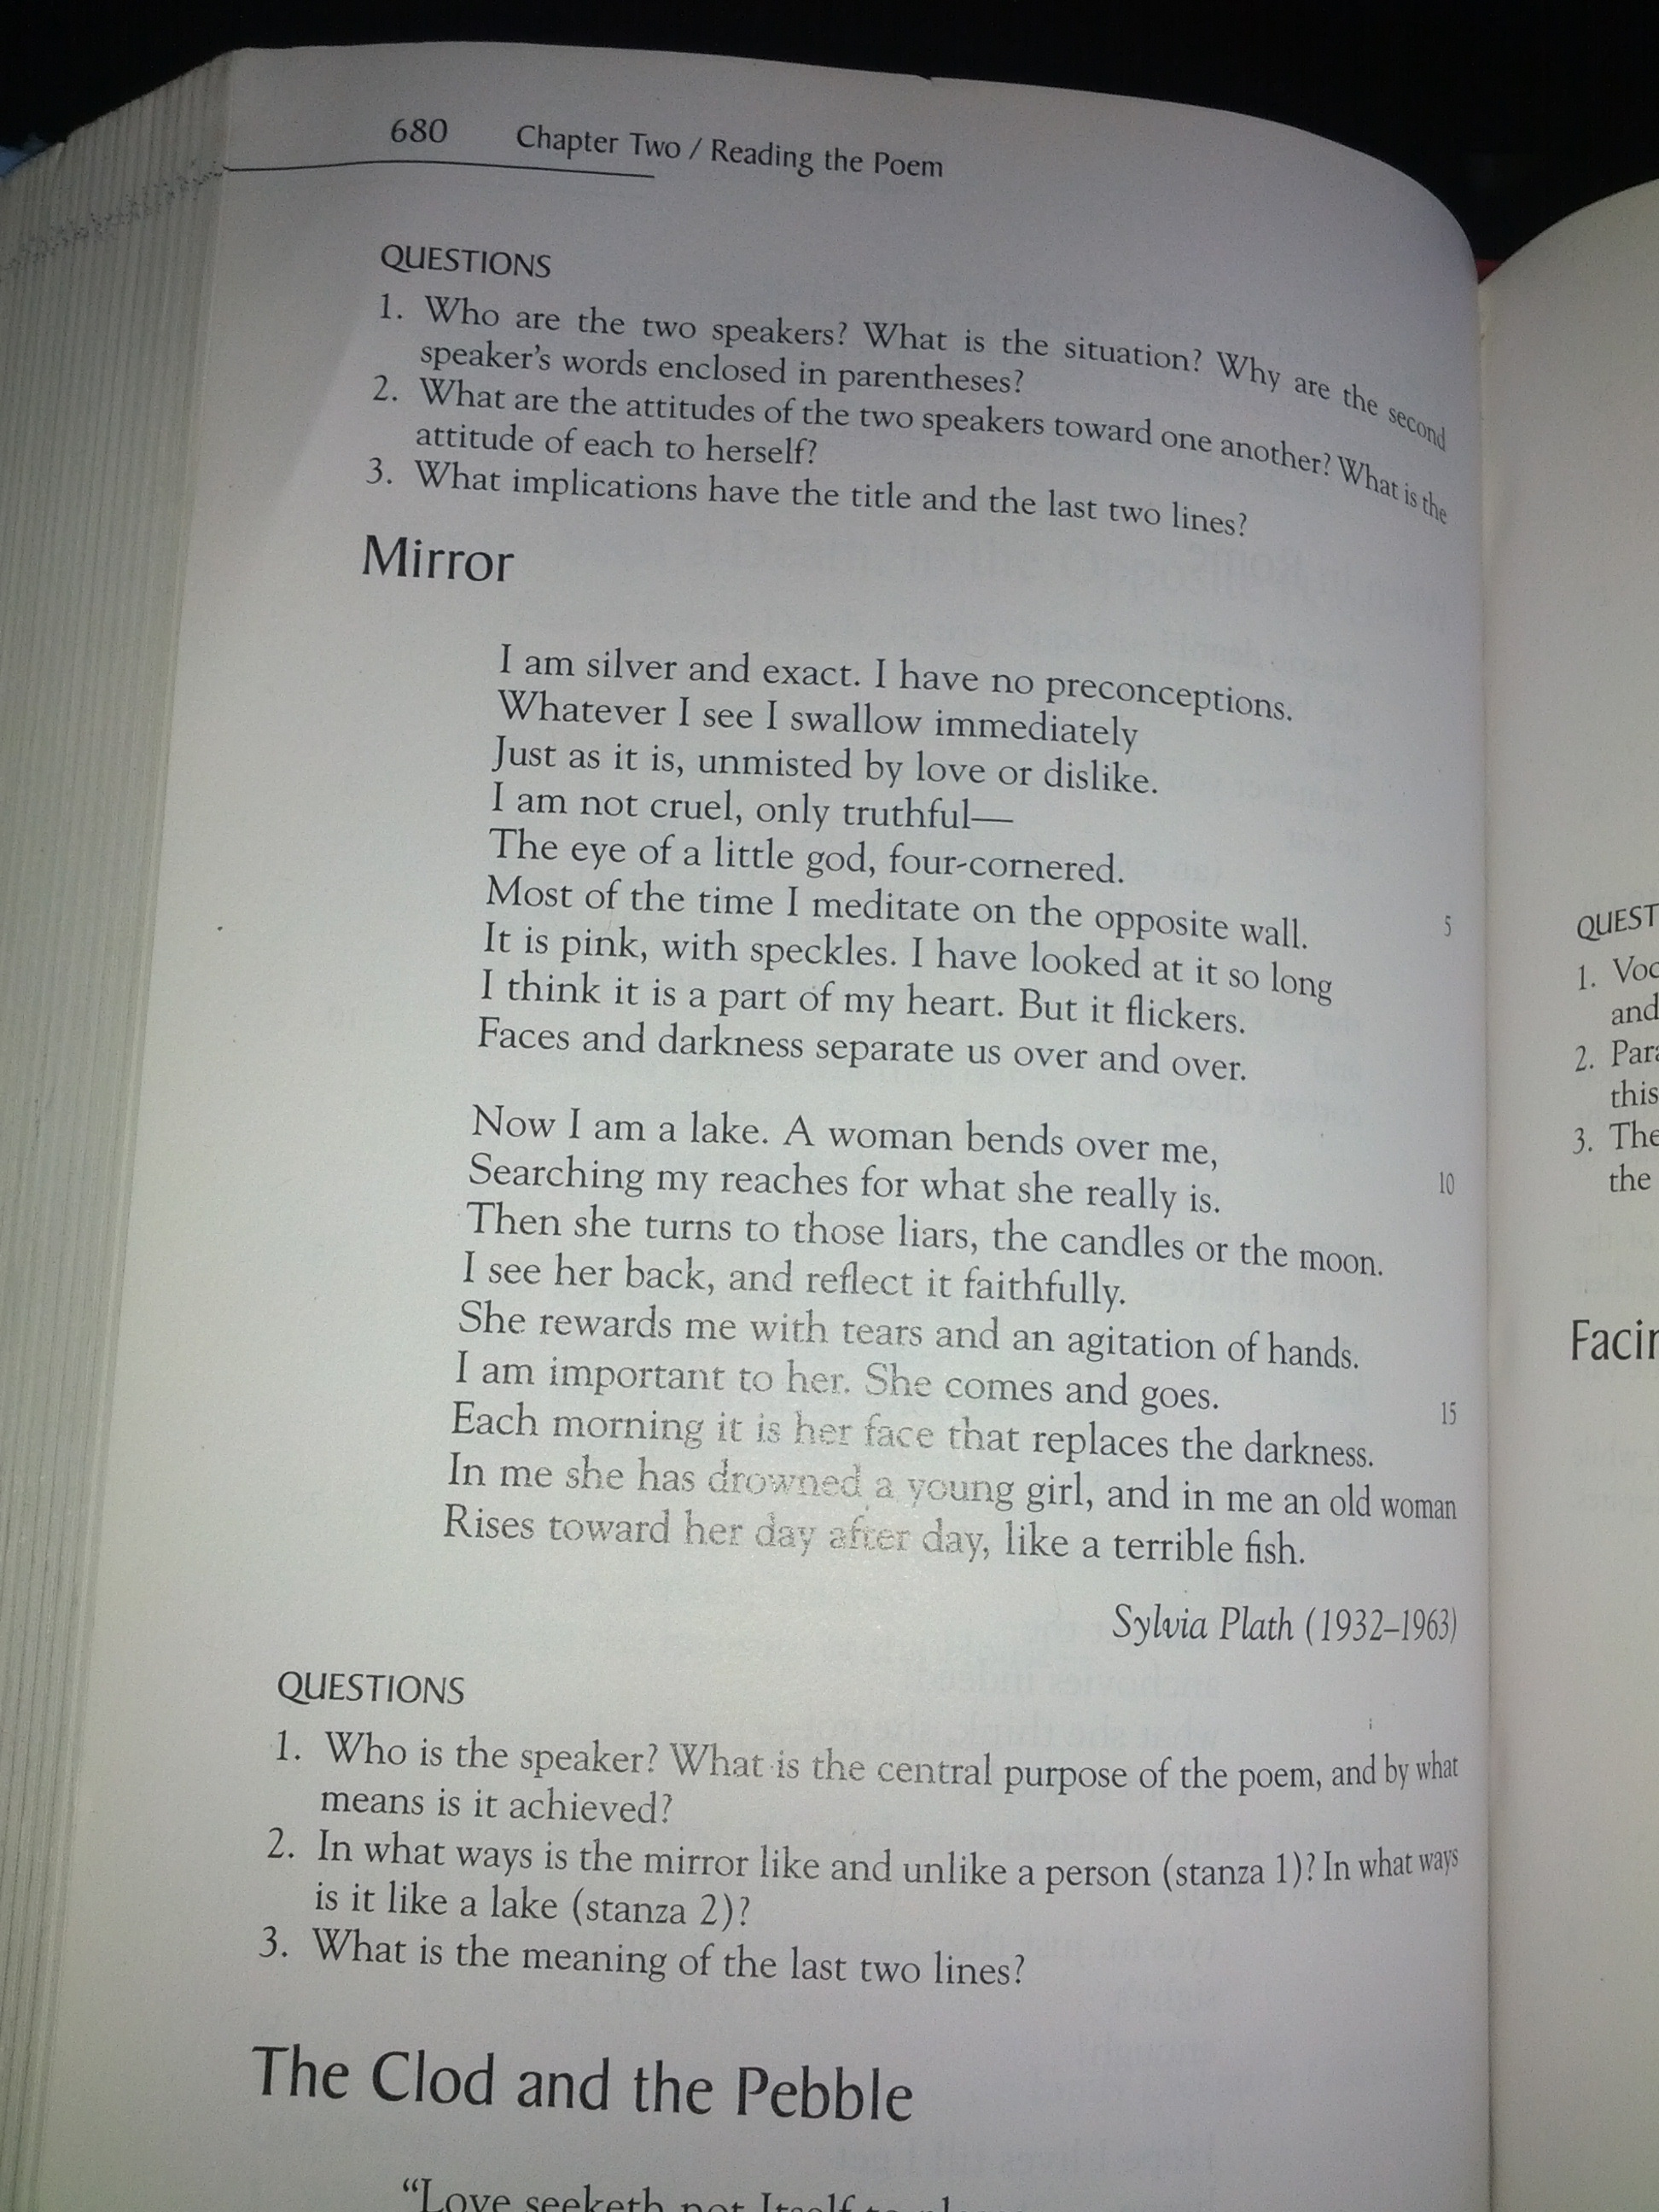 an analysis of the poem mirror by sylvia plath What are the pictures used in the poem  mirror by sylvia plath - mirror by sylvia plath who is the narrator of this poem  in sylvia plath s mirror ,.